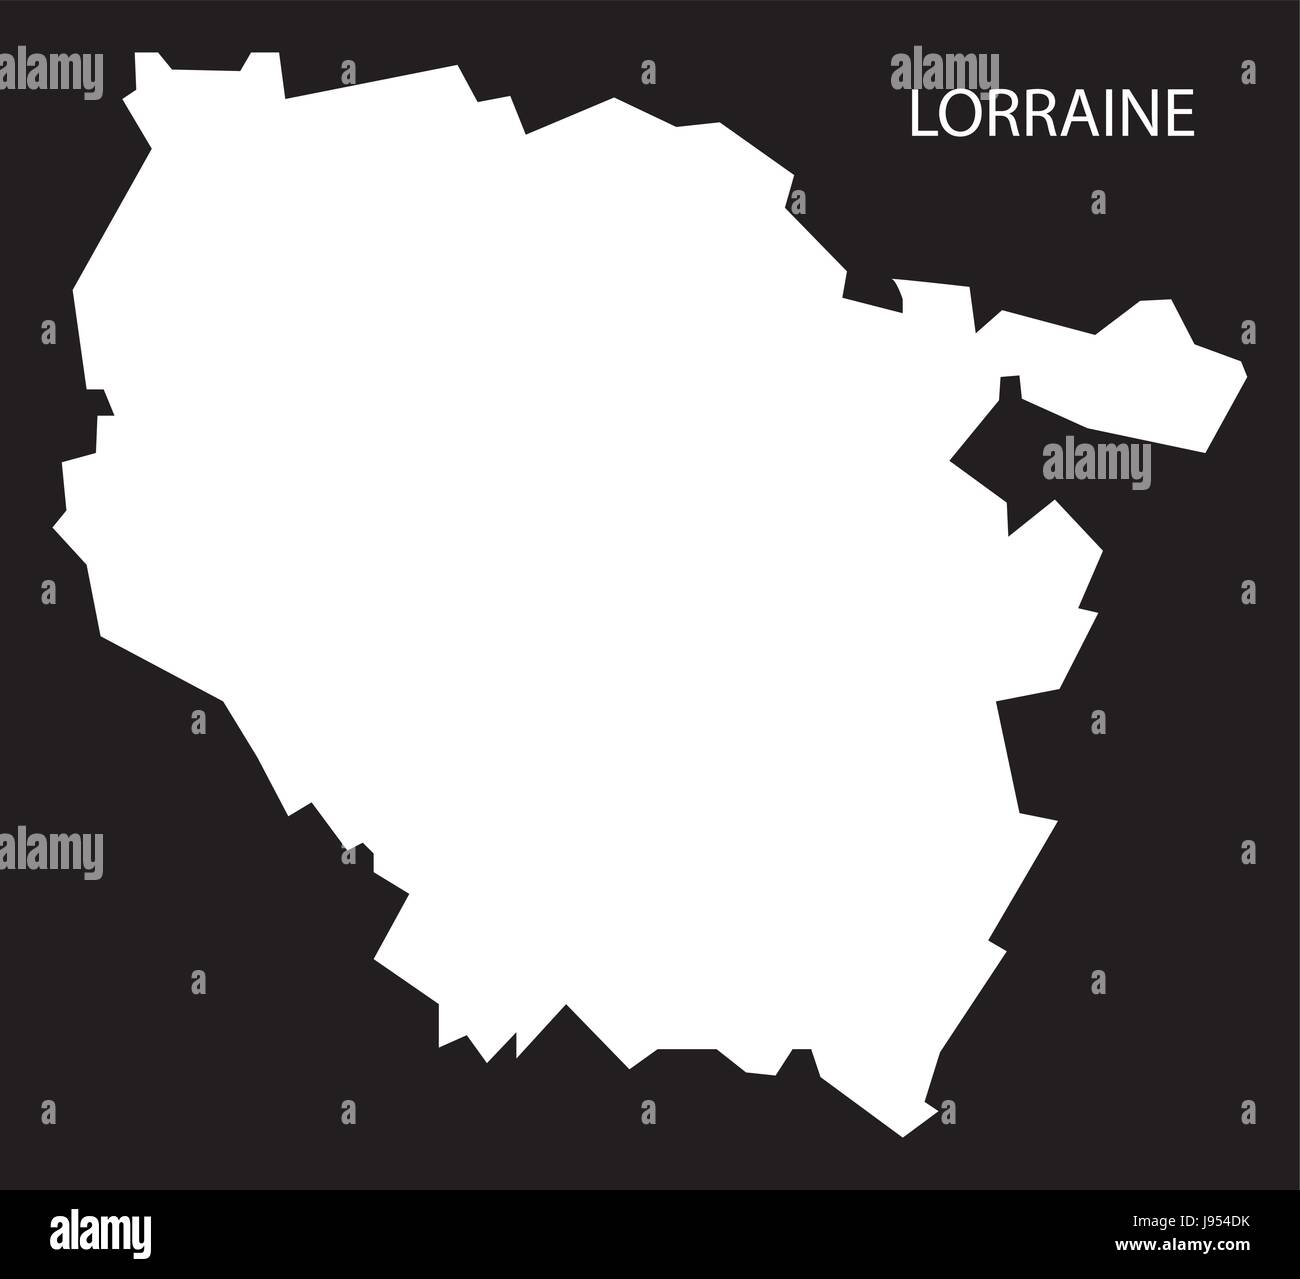 Lorraine France Map Black Inverted Silhouette Illustration Stock